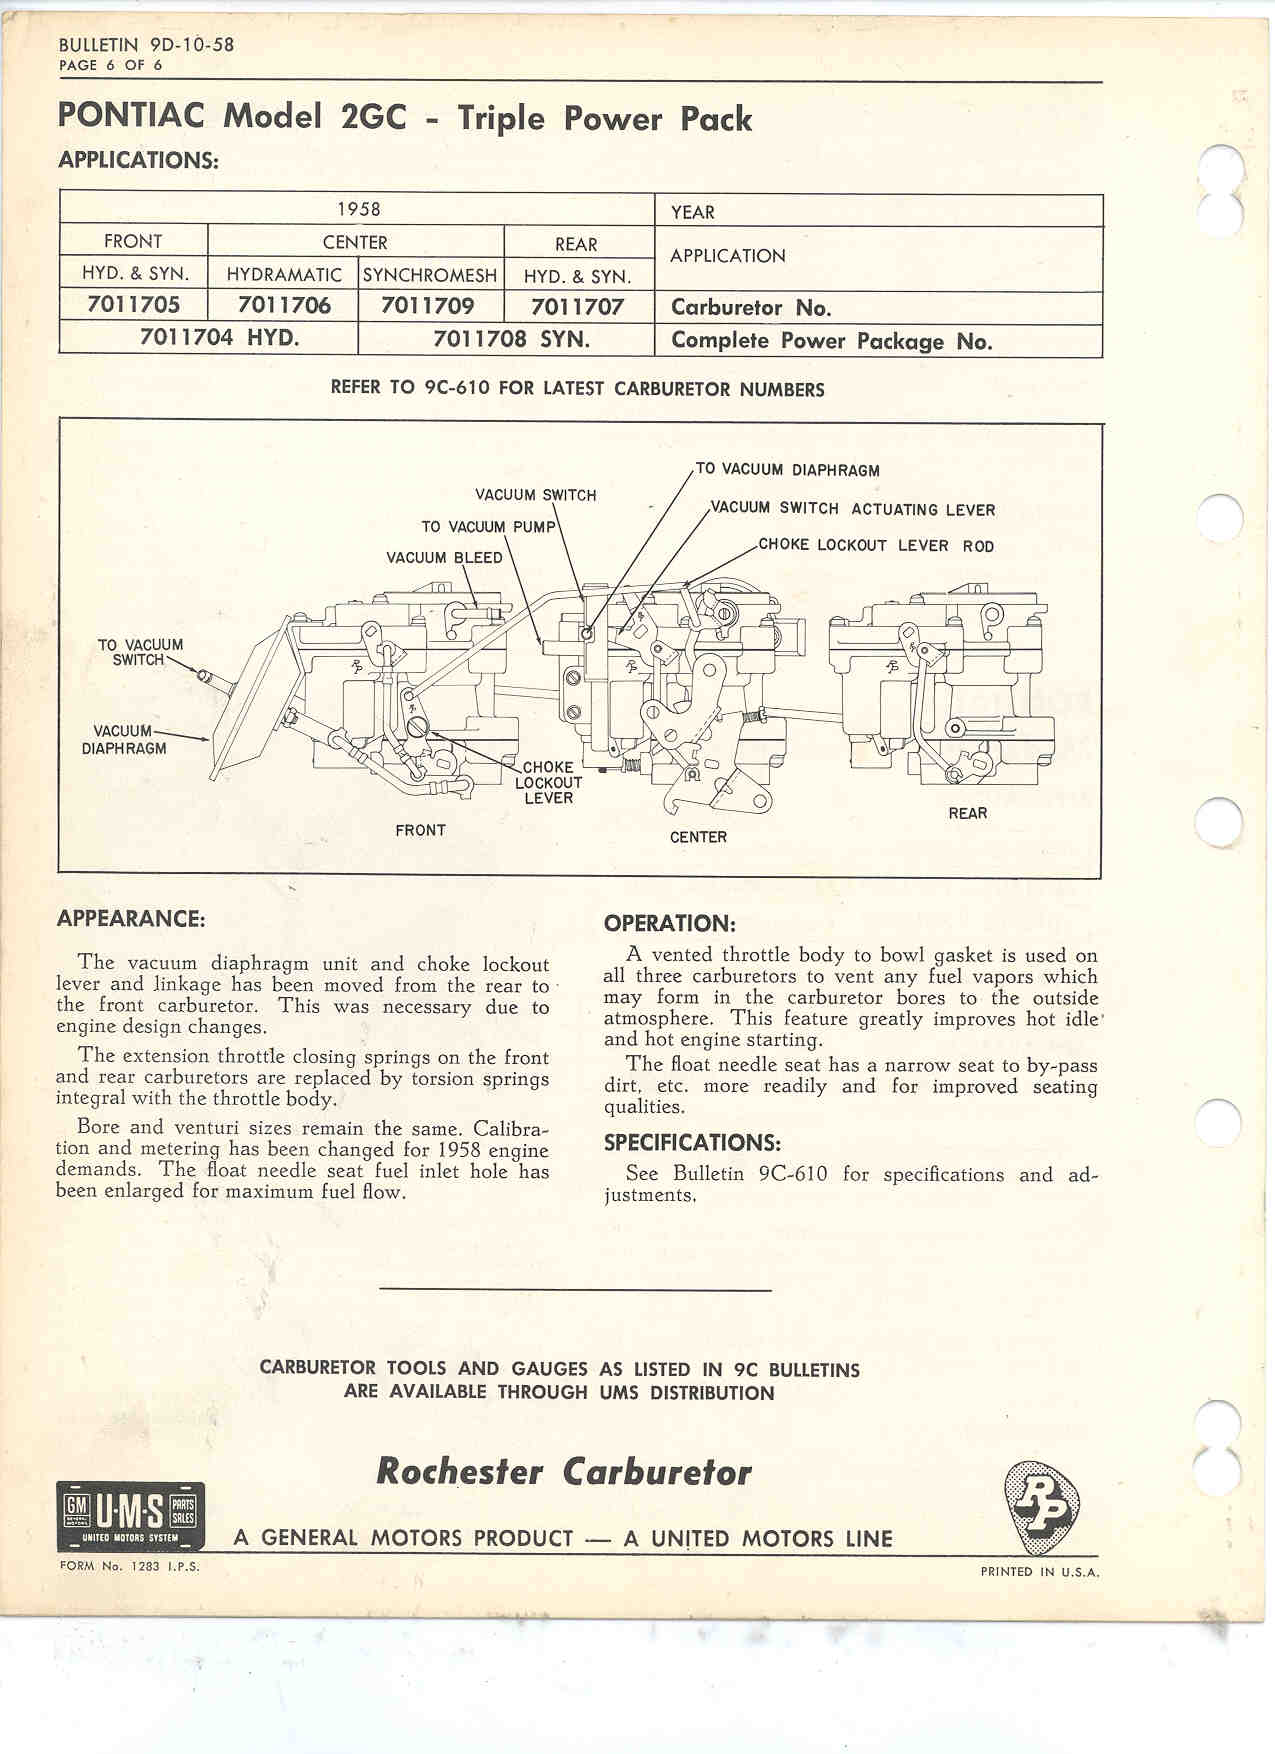 The Carburetor Shop Troubleshooting 454 Jet Boat Wiring Diagram Rochester Bulletin Here Is Another Link Showing A Slotted Gasket Regular Often Used For Marine Carbs And Some Other Hot Idle Compensation